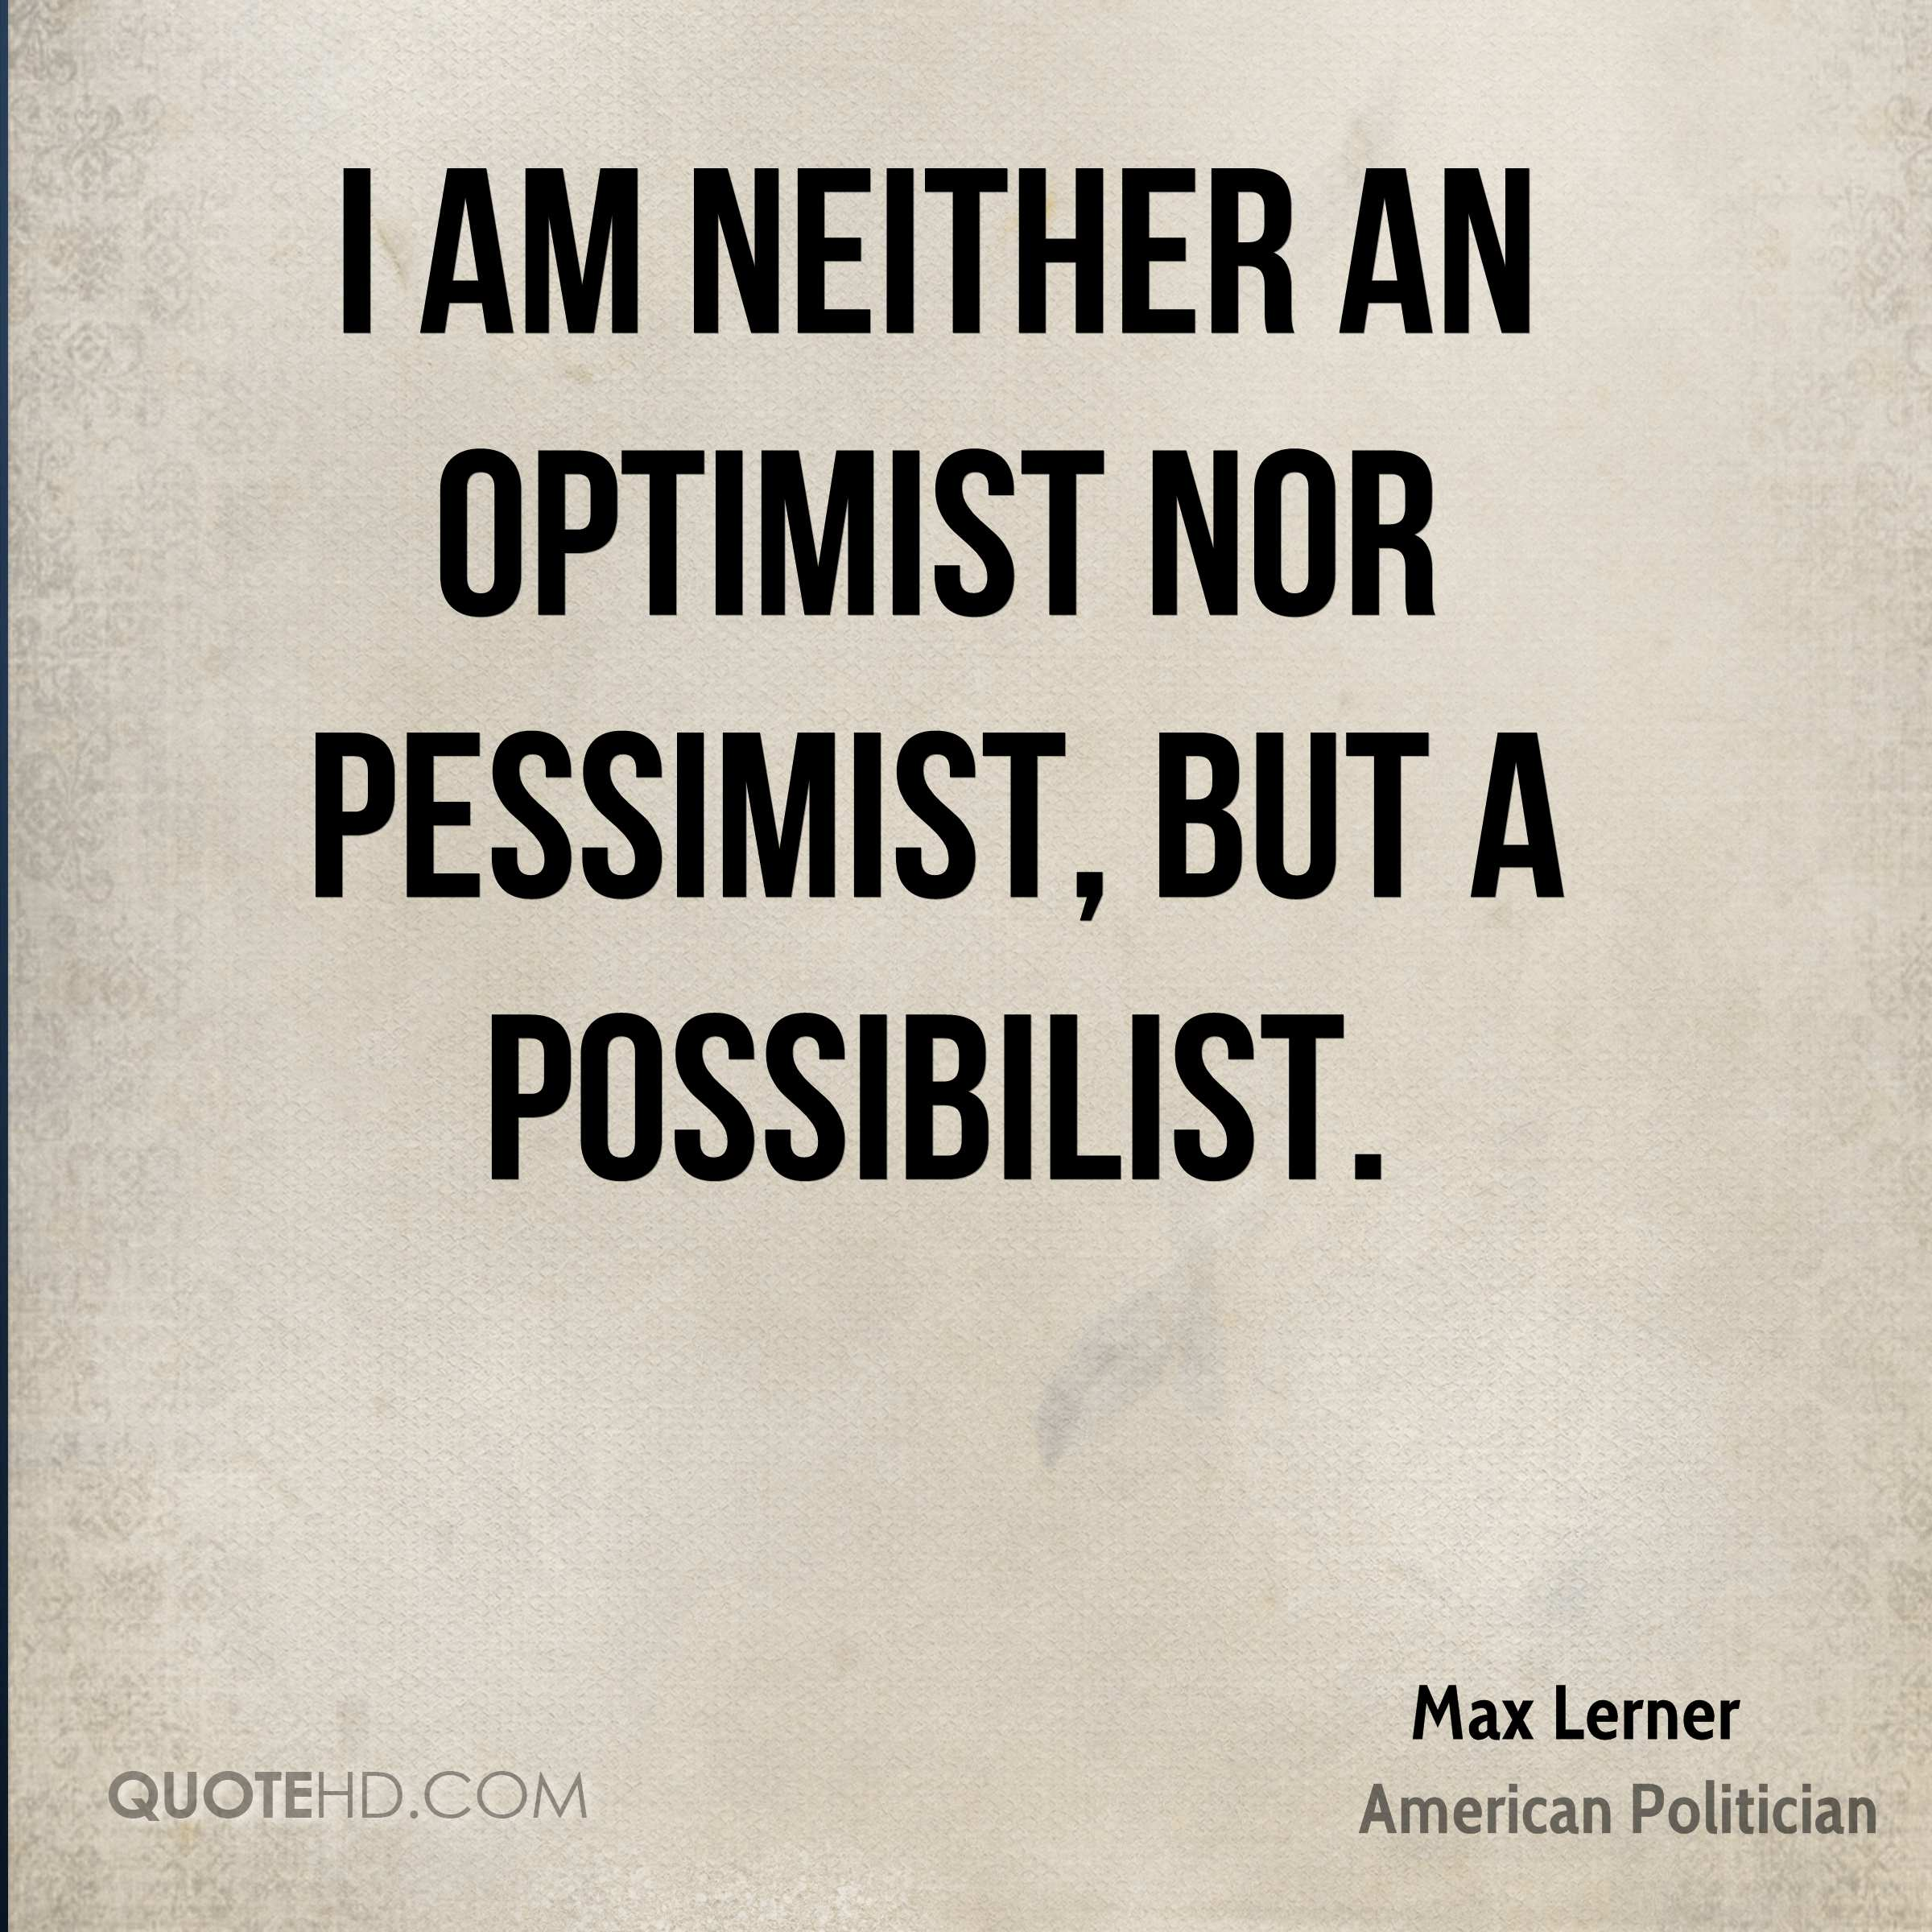 Quotes About Optimism Optimist Quotes  Page 1  Quotehd